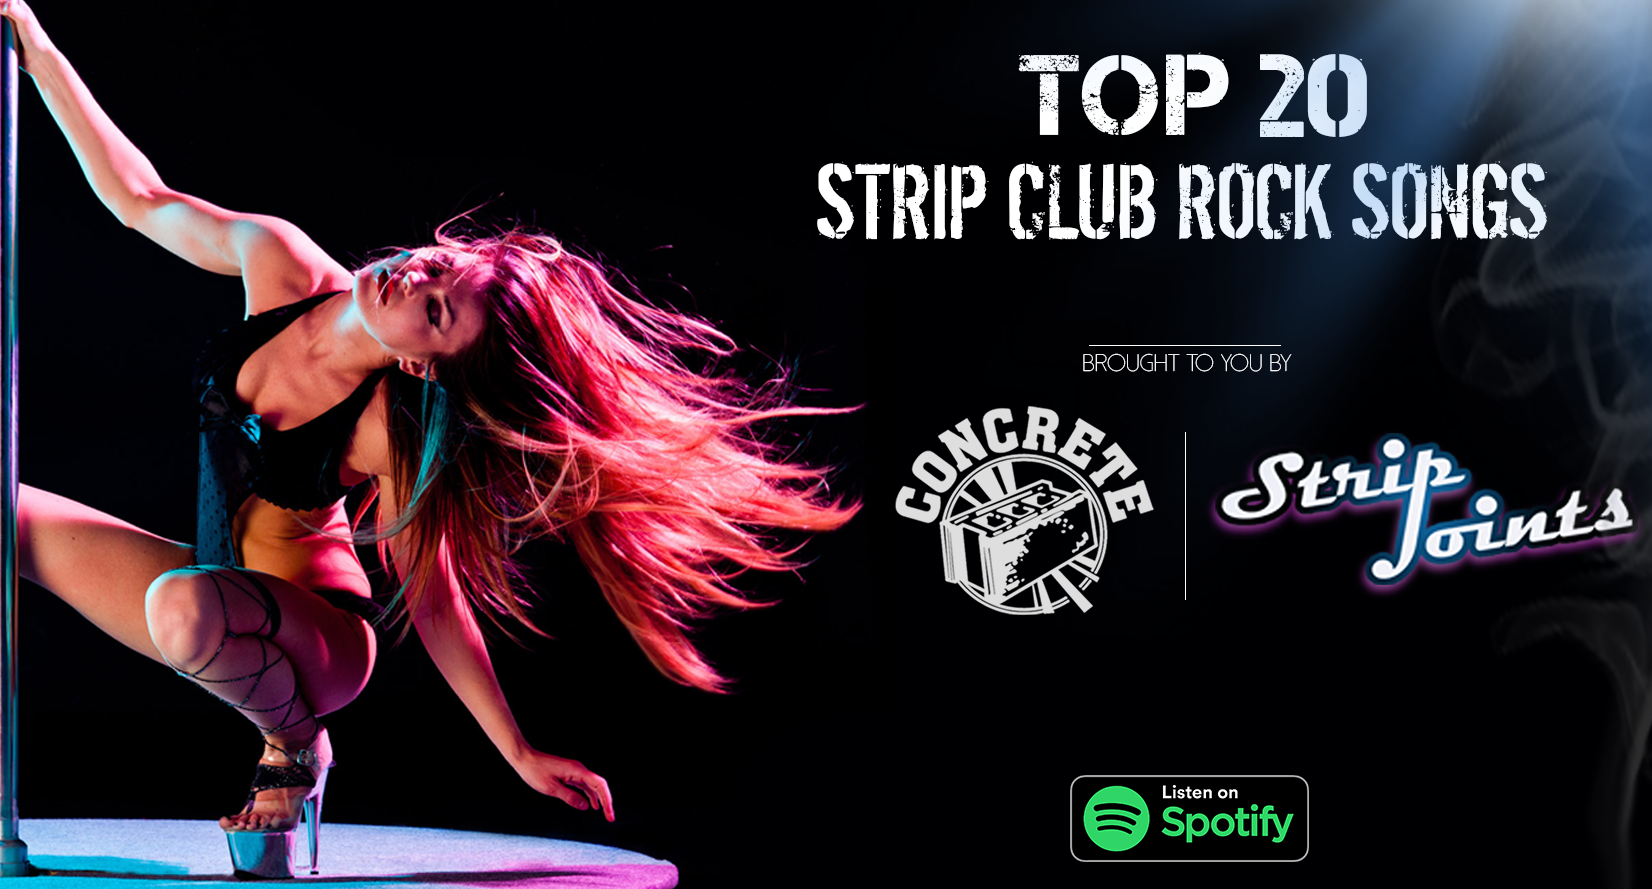 Top 20 Strip Club Rock Songs